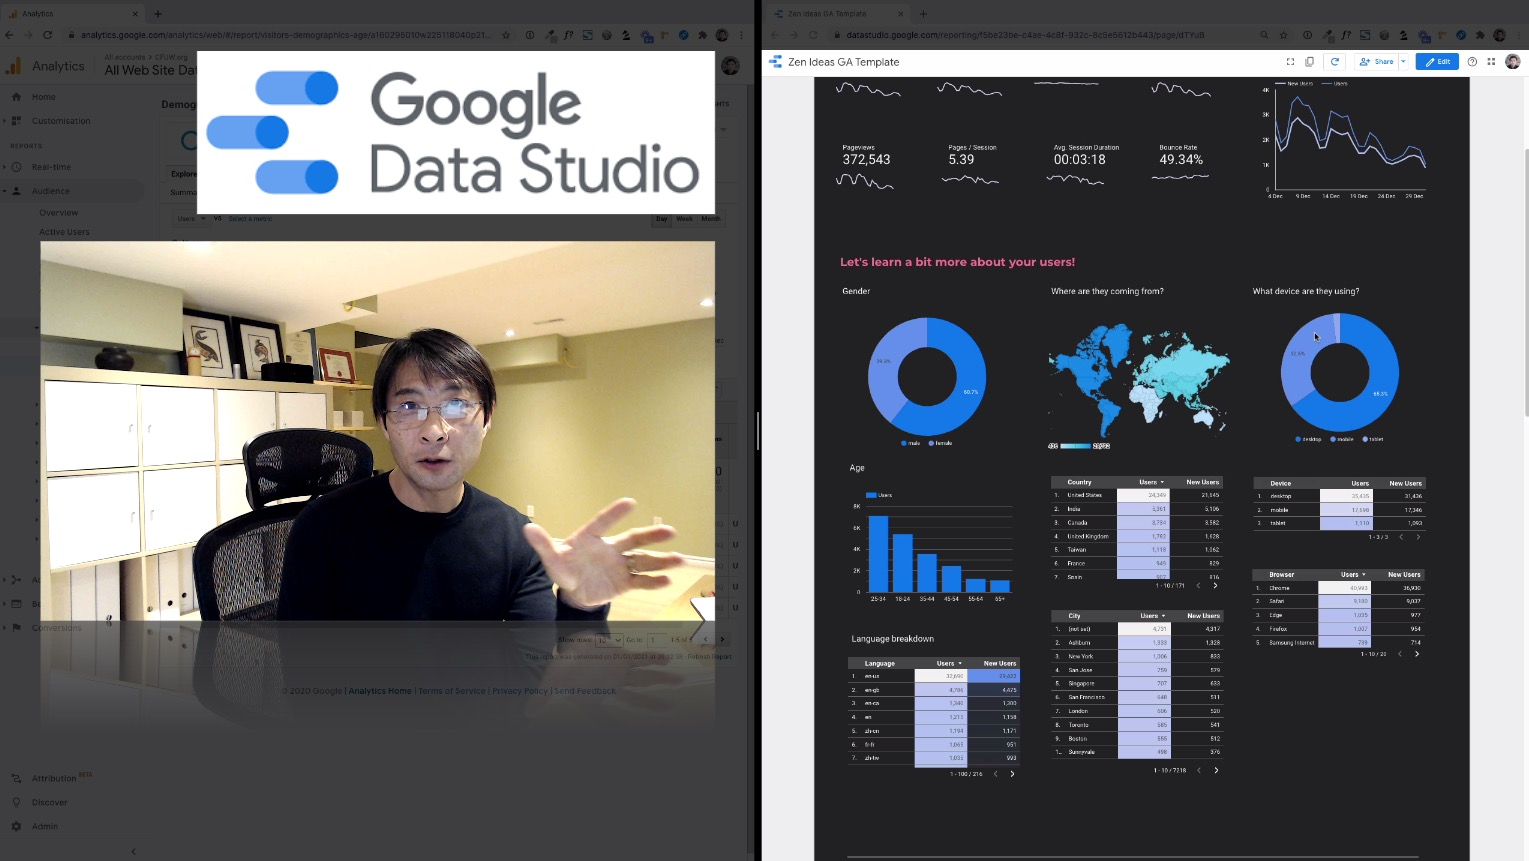 How to customize your Google Analytics data with Google Data Studio